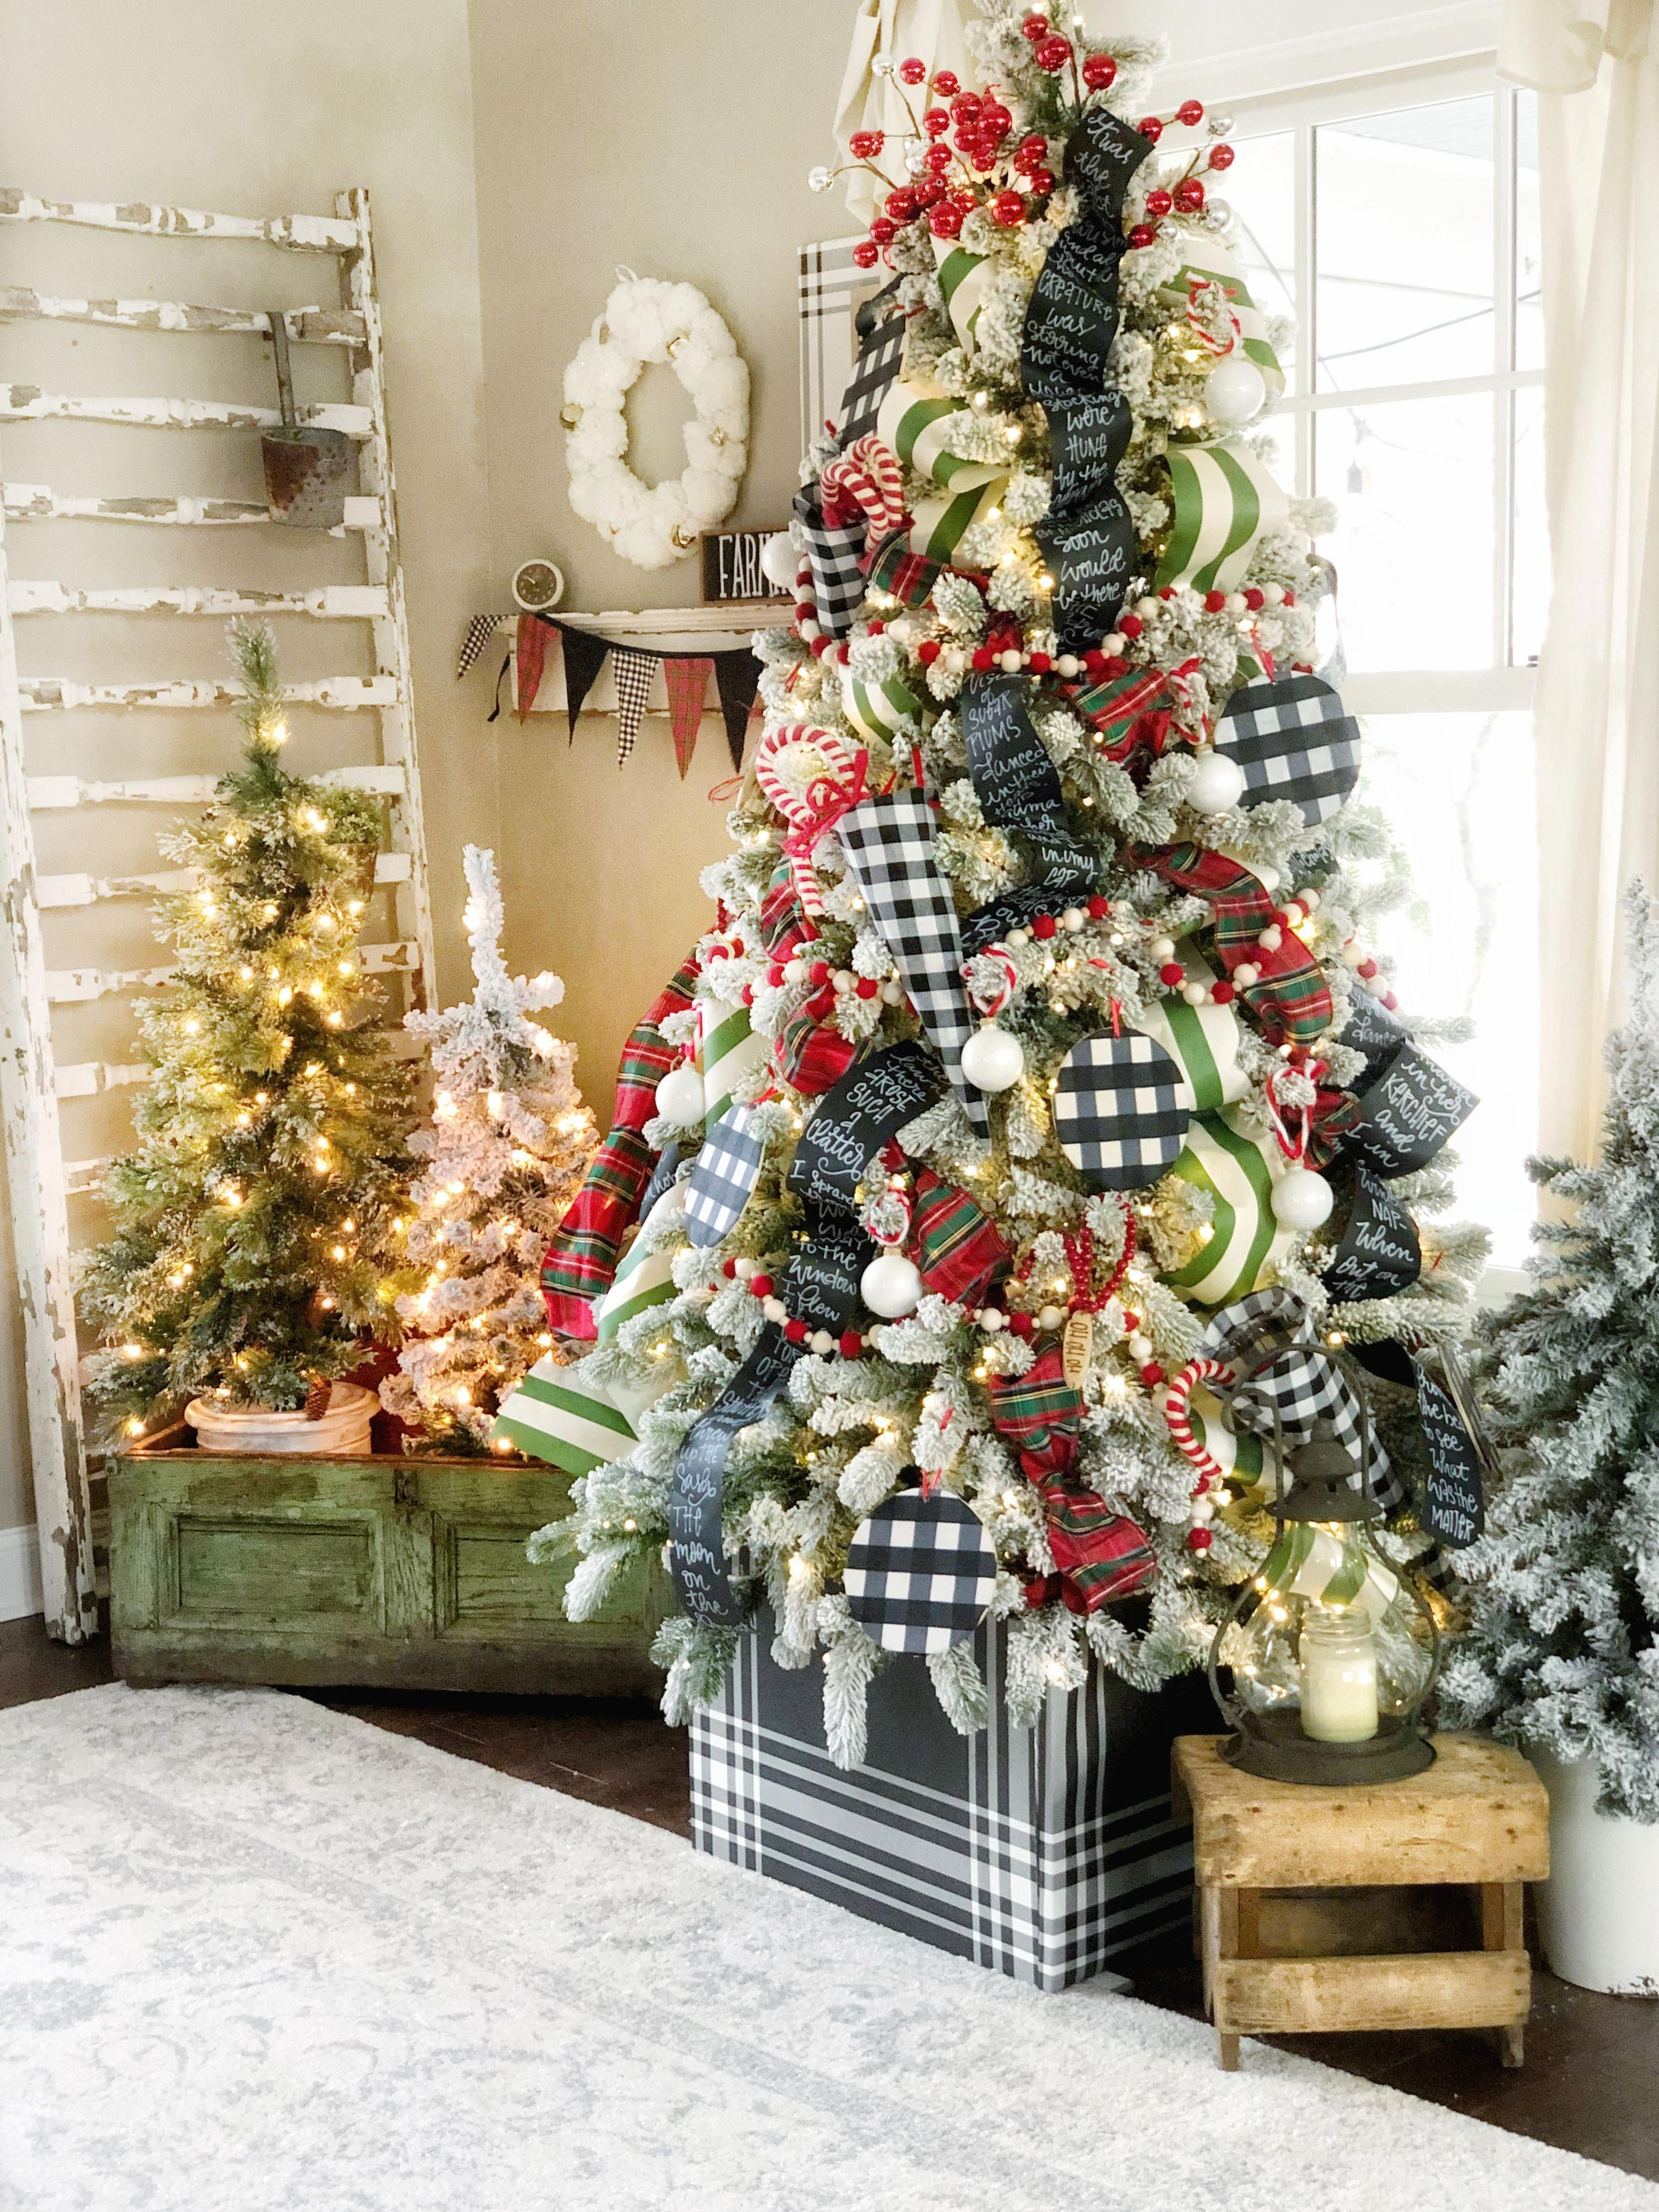 Christmas Decorations Home Bargains Christmas Tree Scientific Name Merry Bright Christmas Christmas Home Christmas Tree